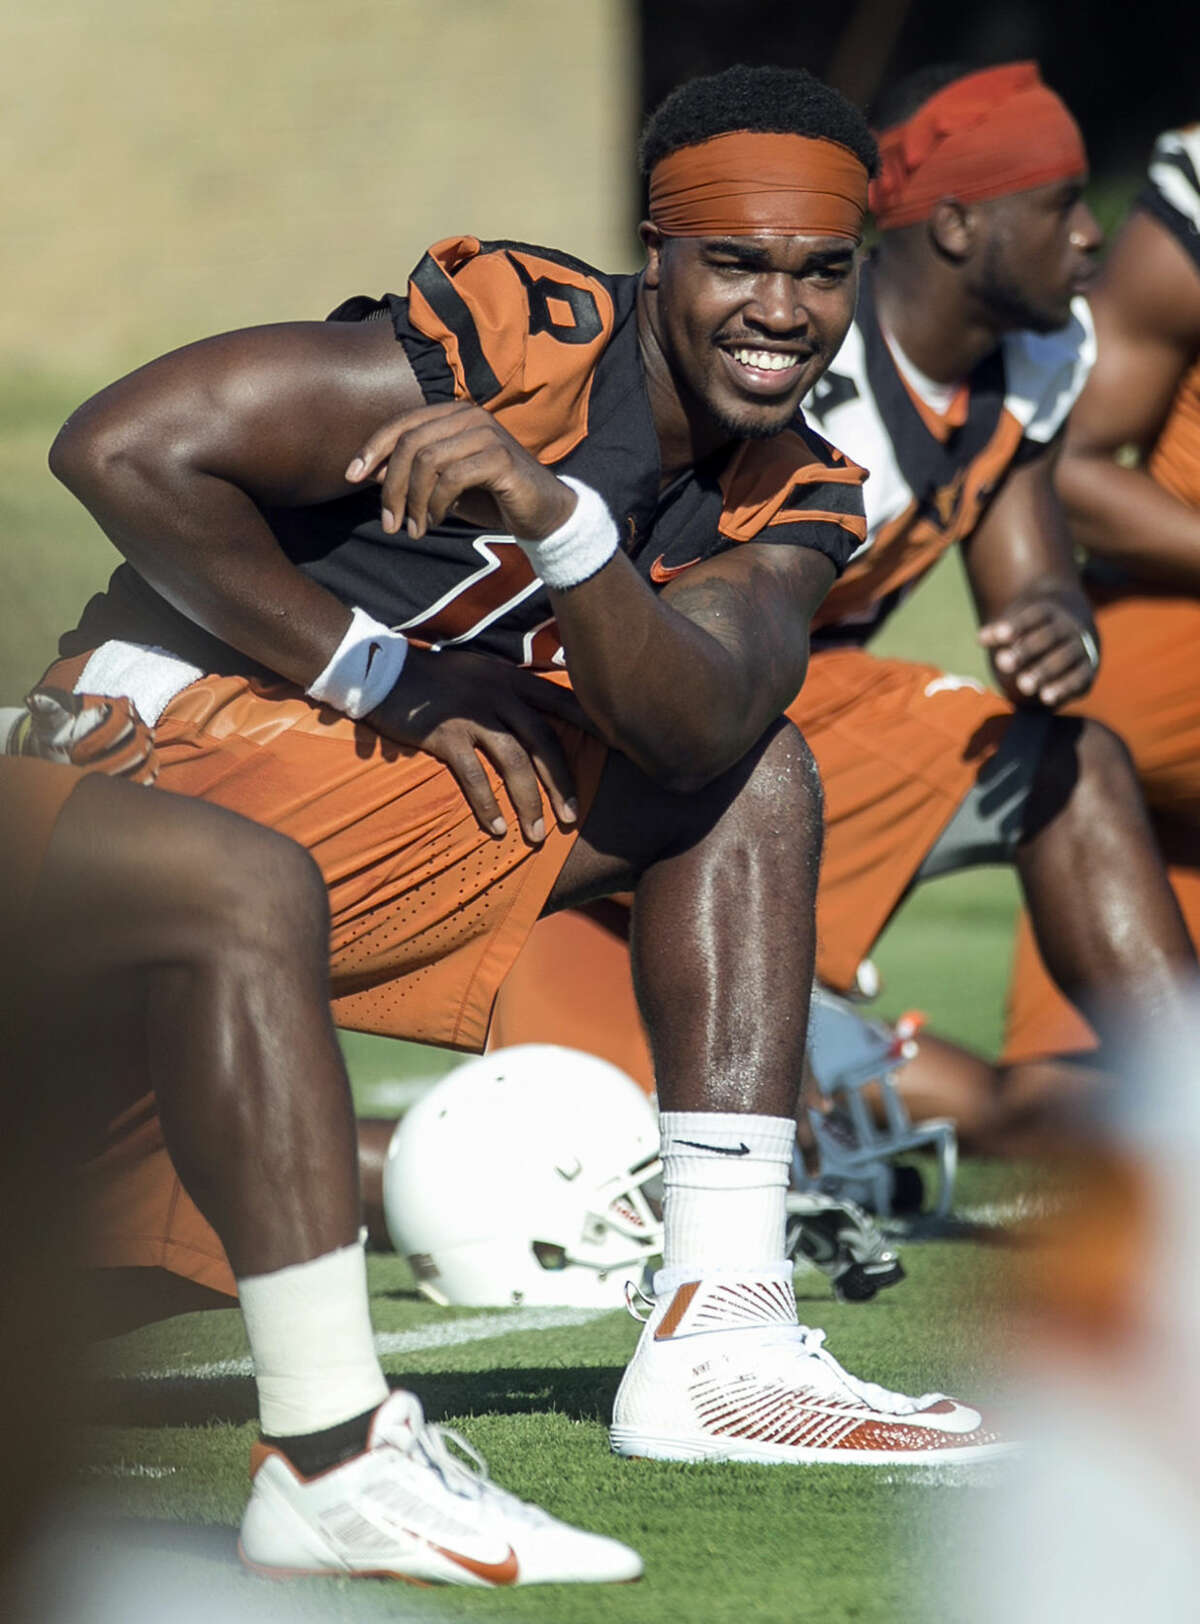 Texas quarterback Tyrone Swoops stretches with the team during NCAA college football practice in Austin, Texas, Friday, Aug. 7, 2015. (Rodolfo Gonzalez/Austin American-Statesman via AP)